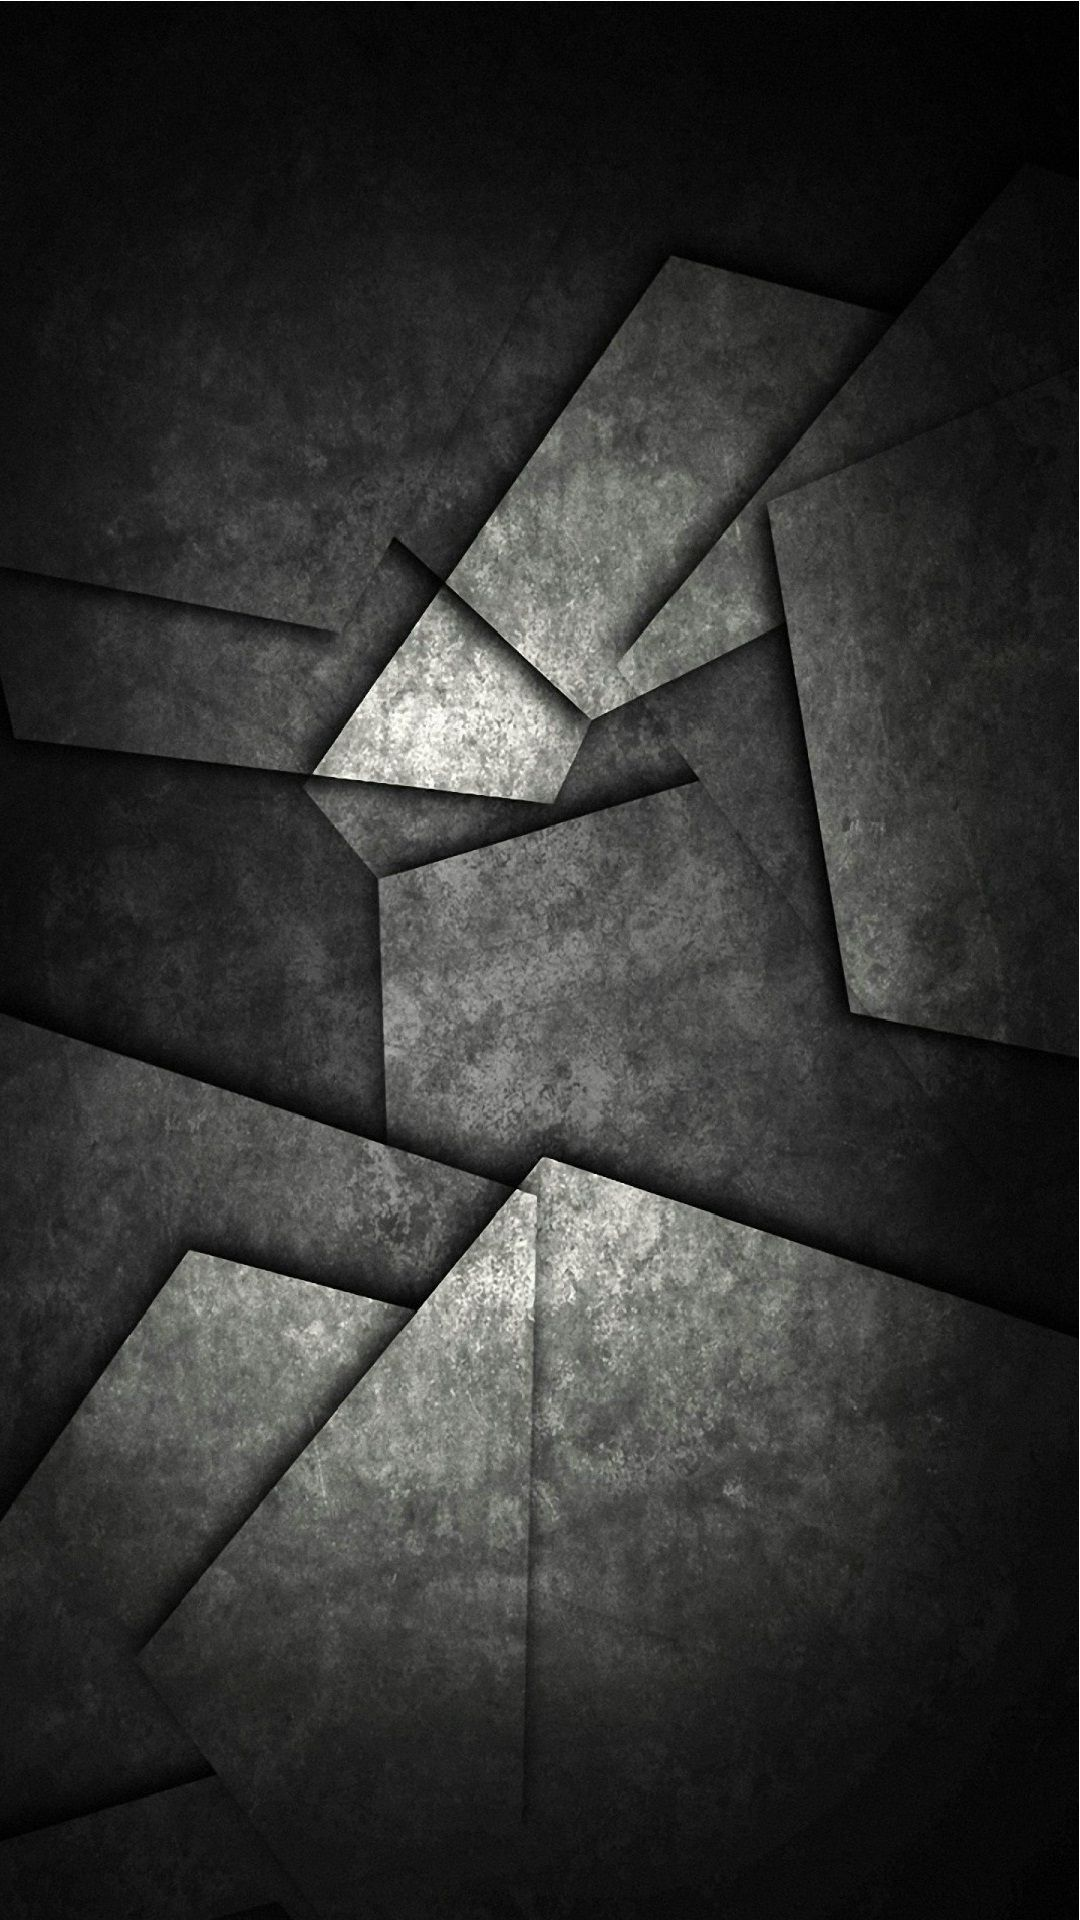 Abstract Wallpaper For Mobile Android Best Hd Wallpapers Android Phone Wallpaper Samsung Wallpaper Cool Wallpapers For Phones